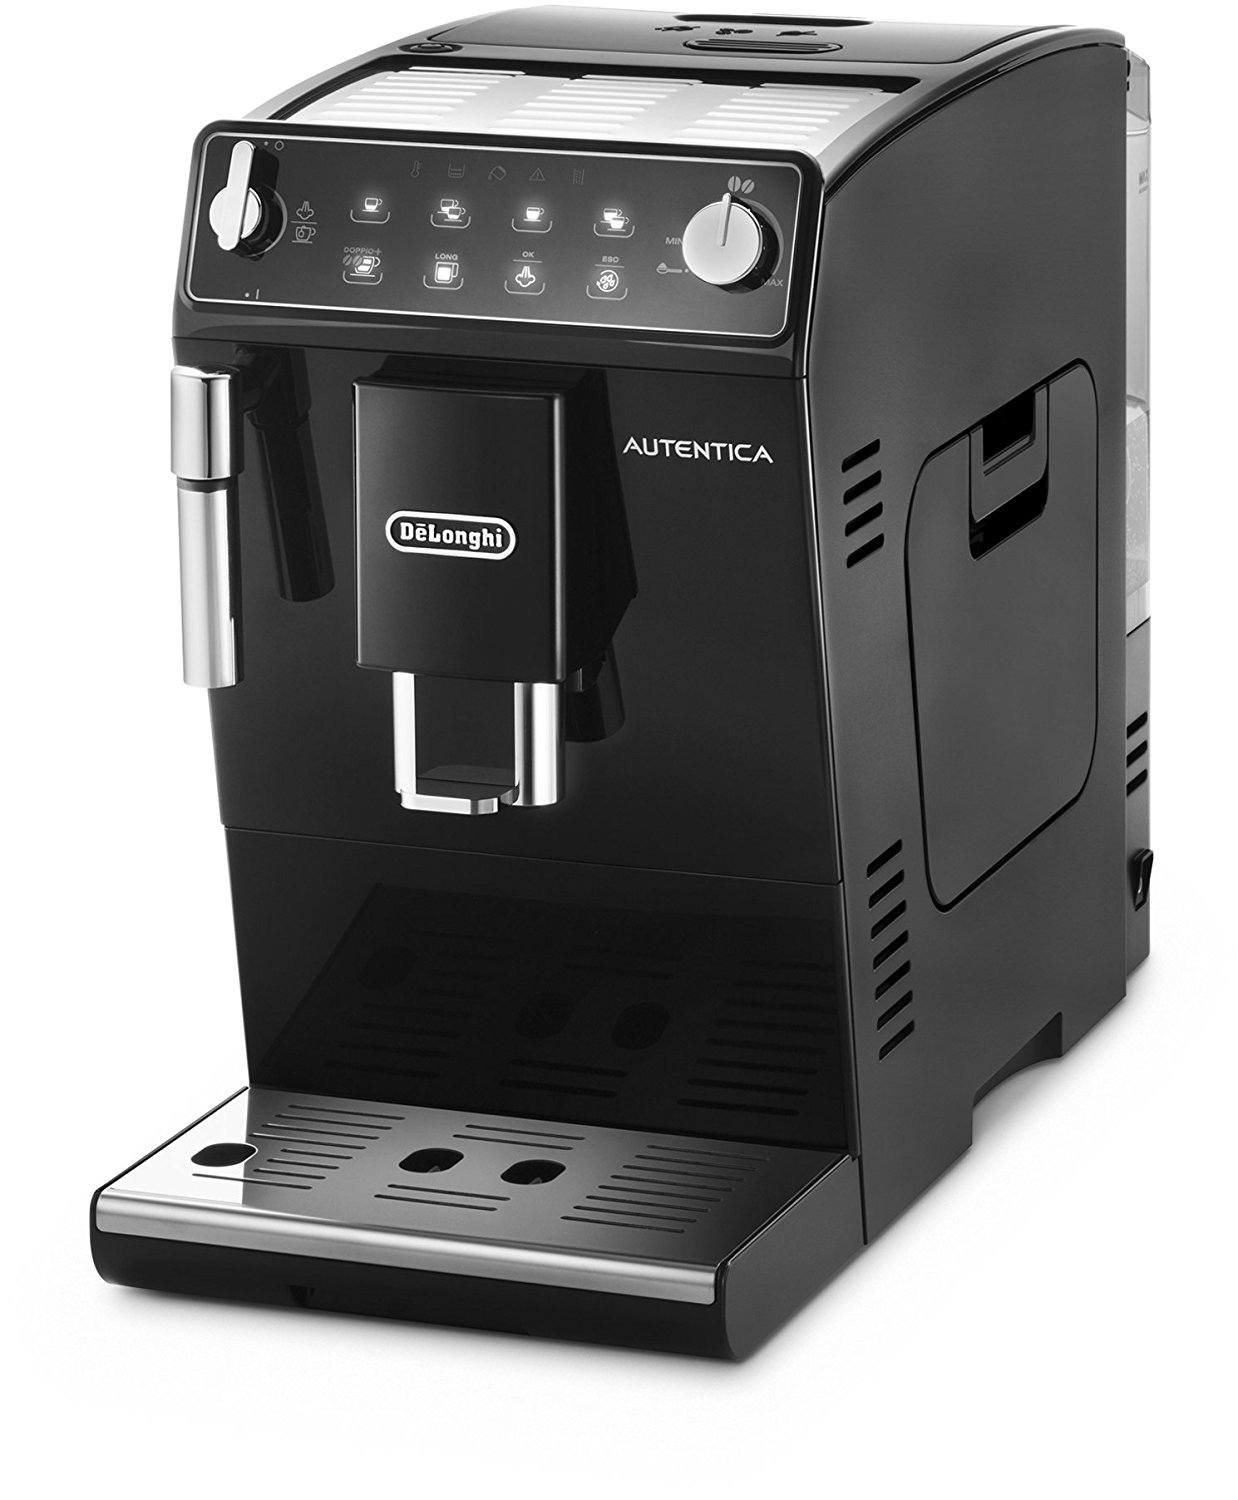 Delonghi ETAM 29.510.B Autentica Bean To Cup Coffee Machine